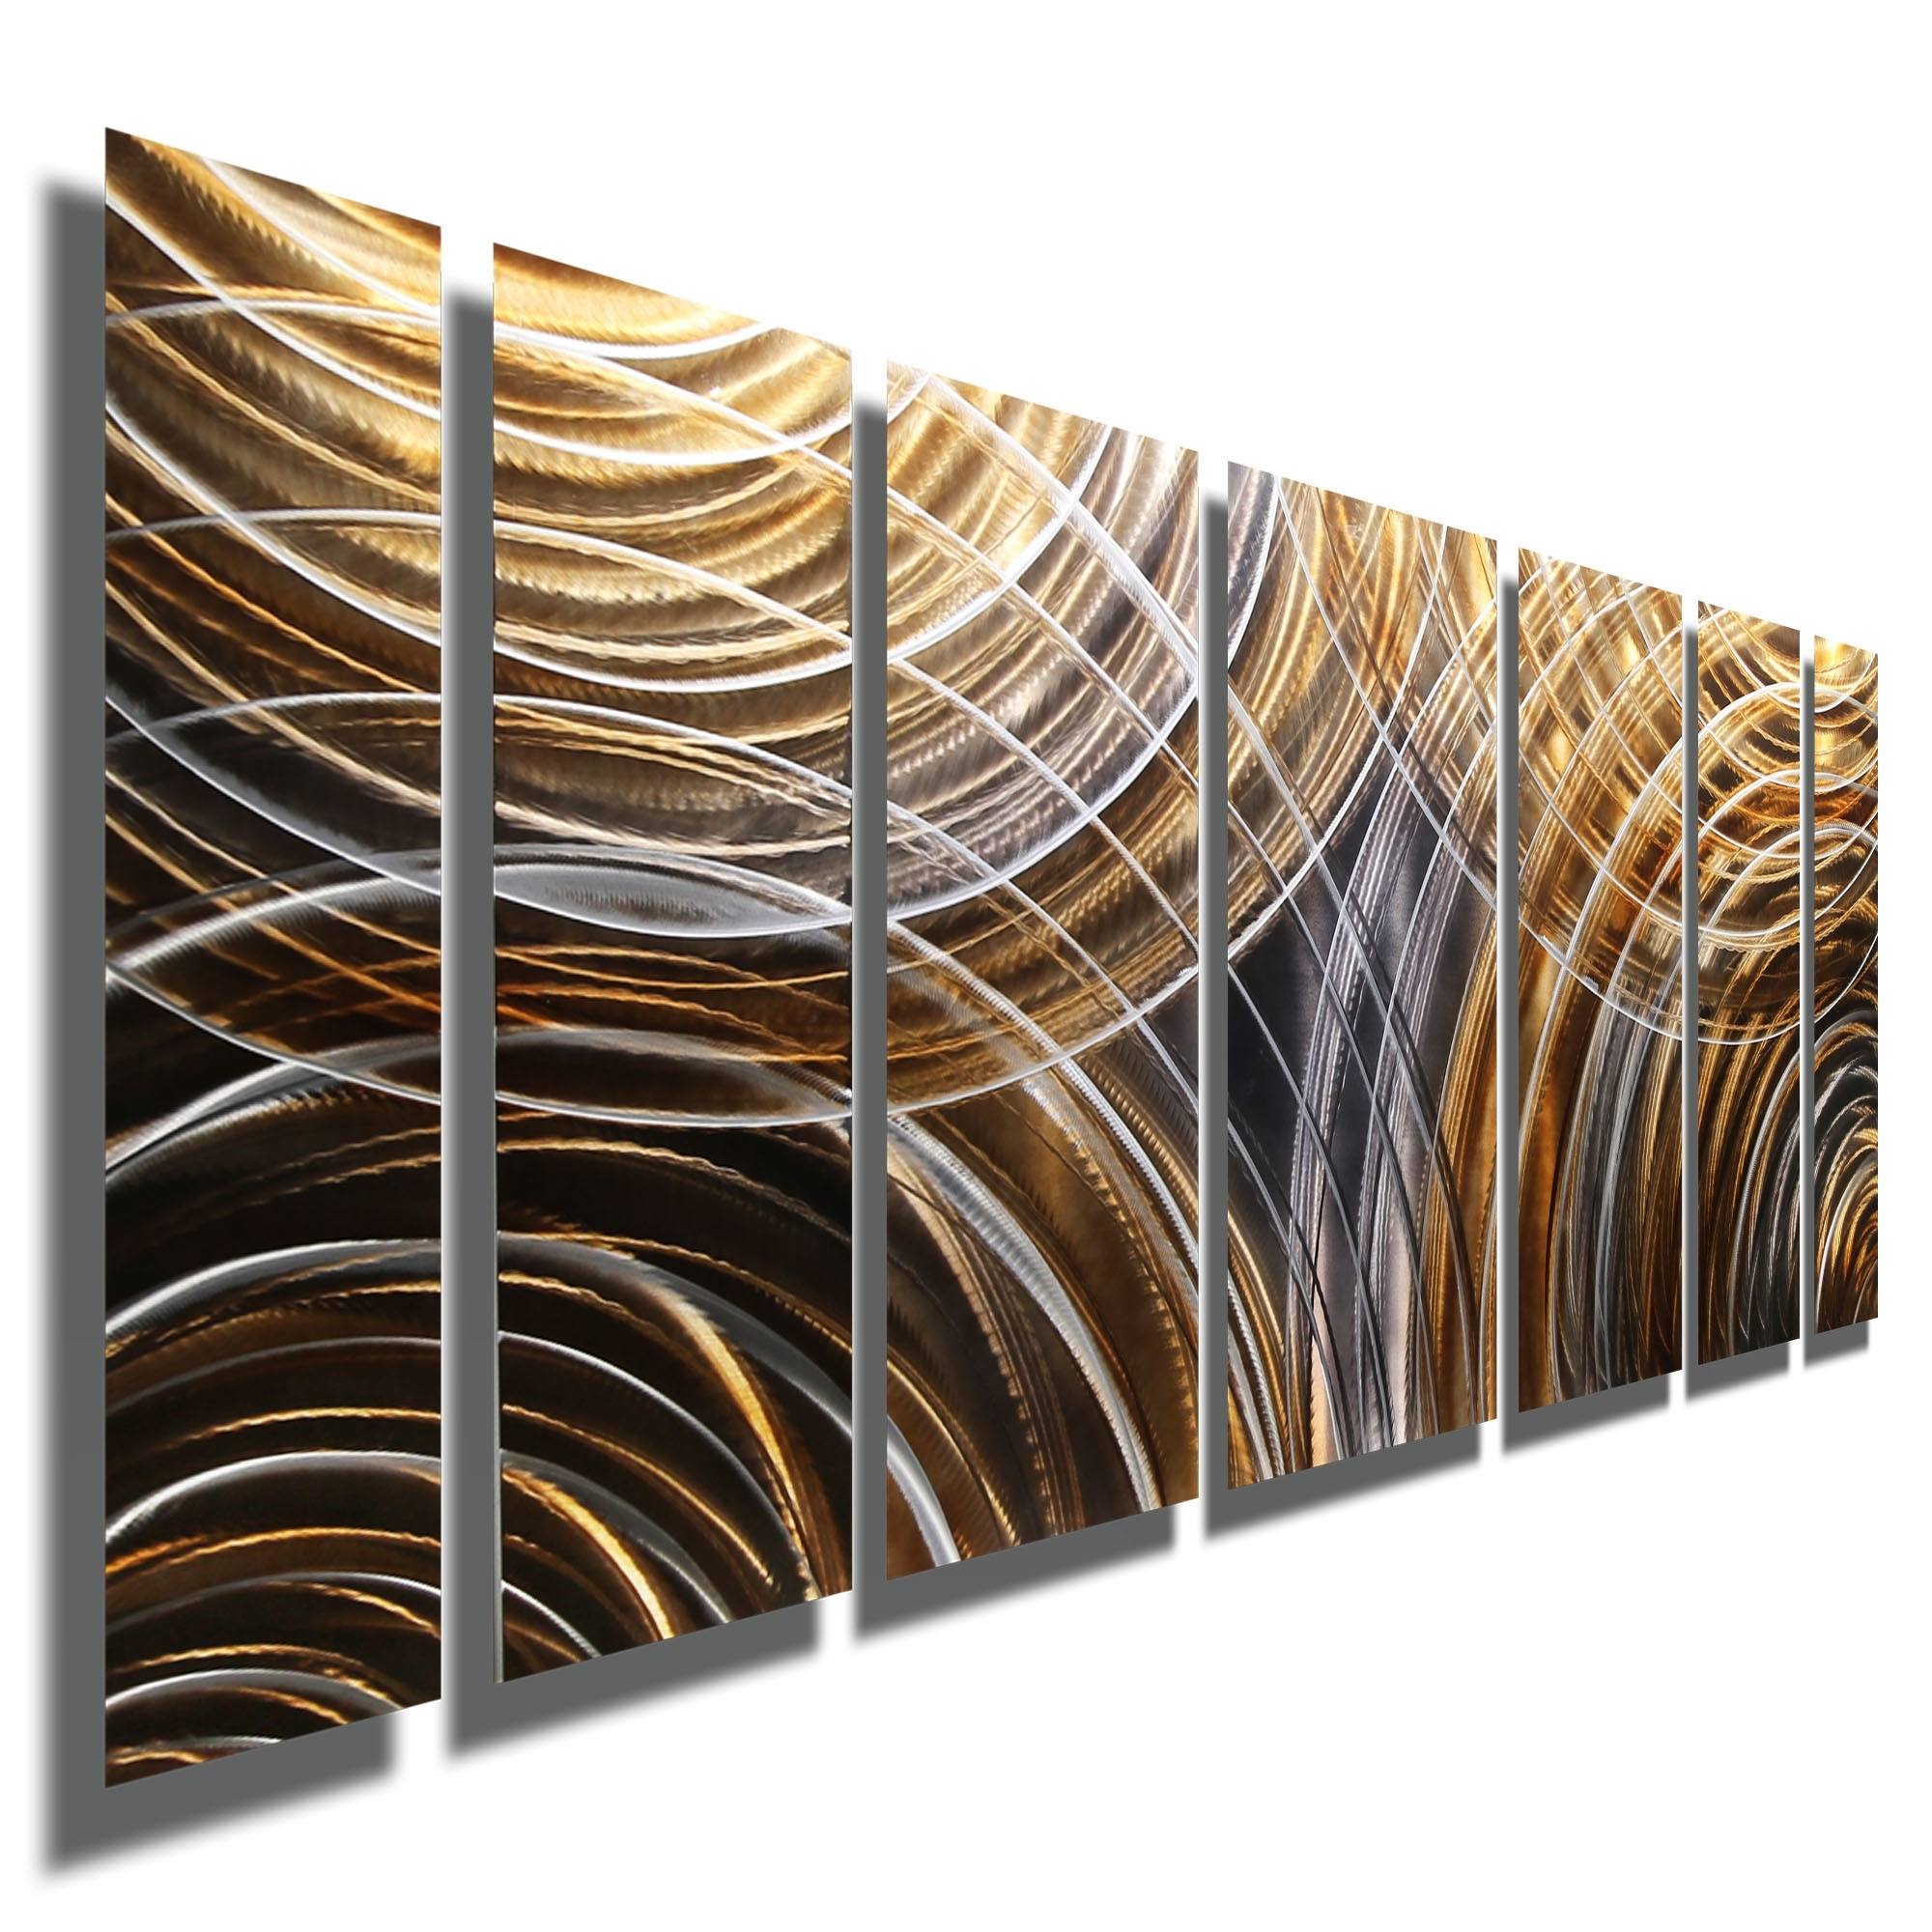 Classy 10+ Abstract Metal Wall Art Design Inspiration Of Best 25+ Intended For 2017 Kindred Abstract Metal Wall Art (View 5 of 20)